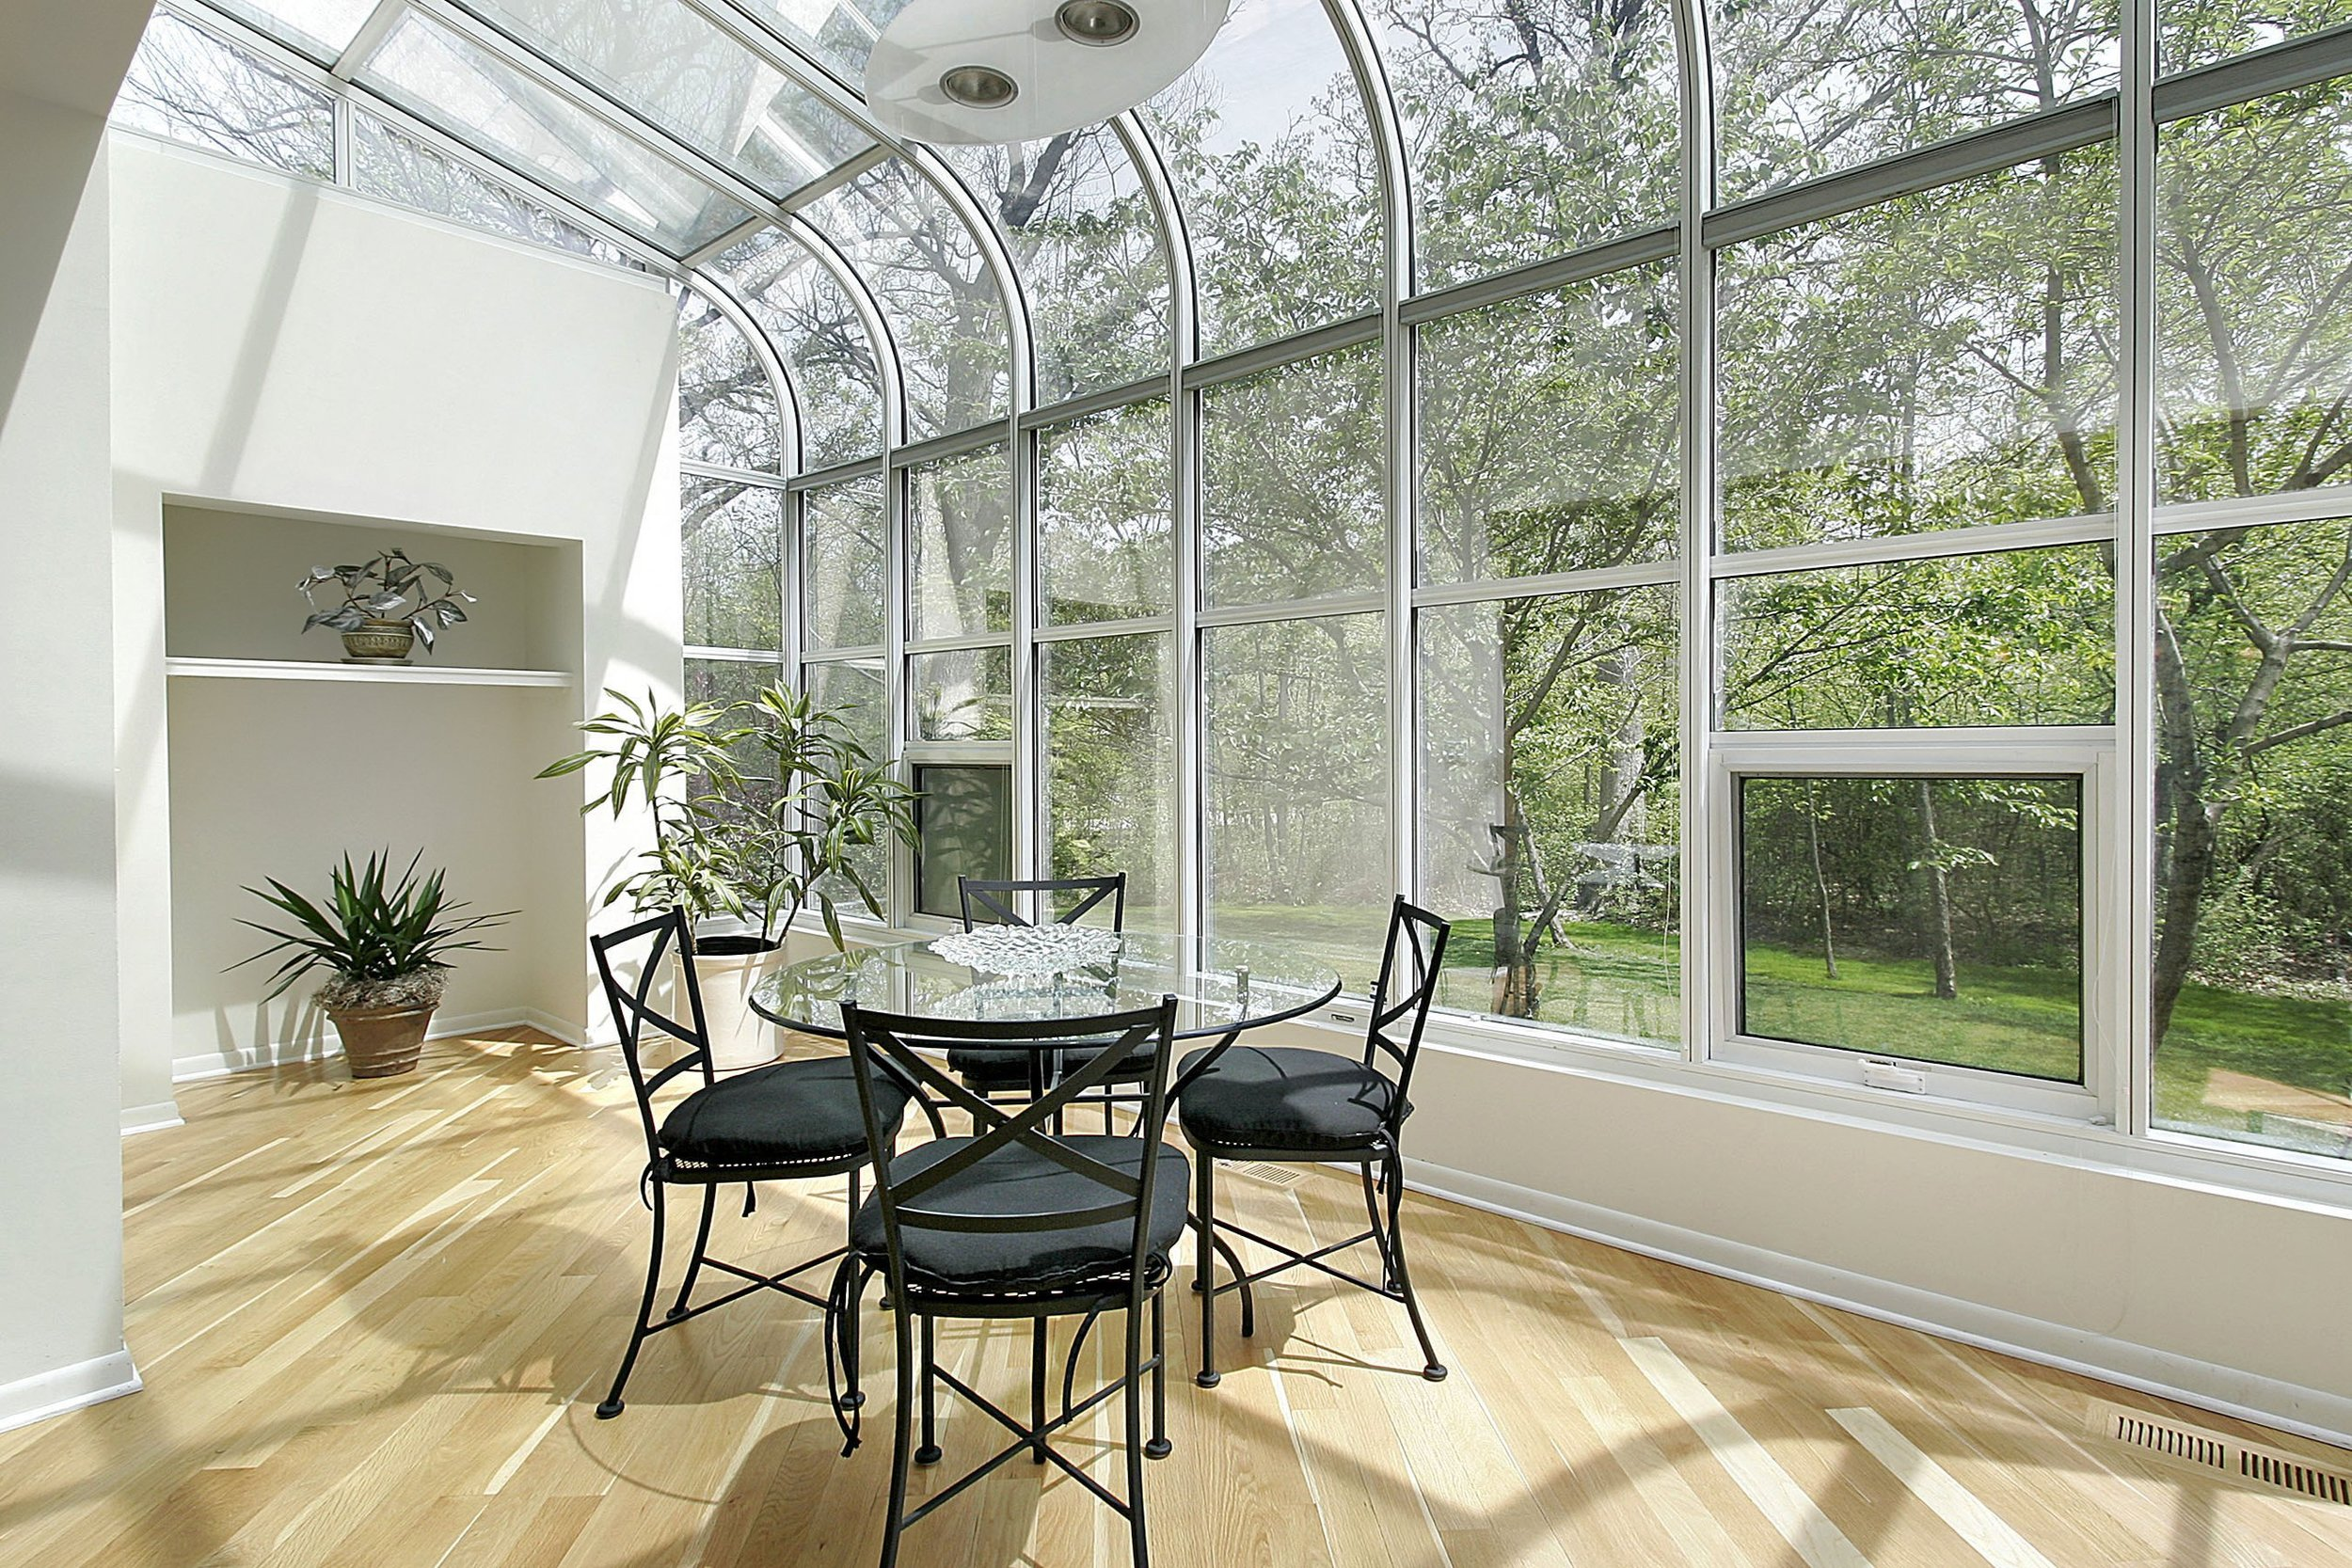 Small atrium style sunroom with wood floor and cafe table